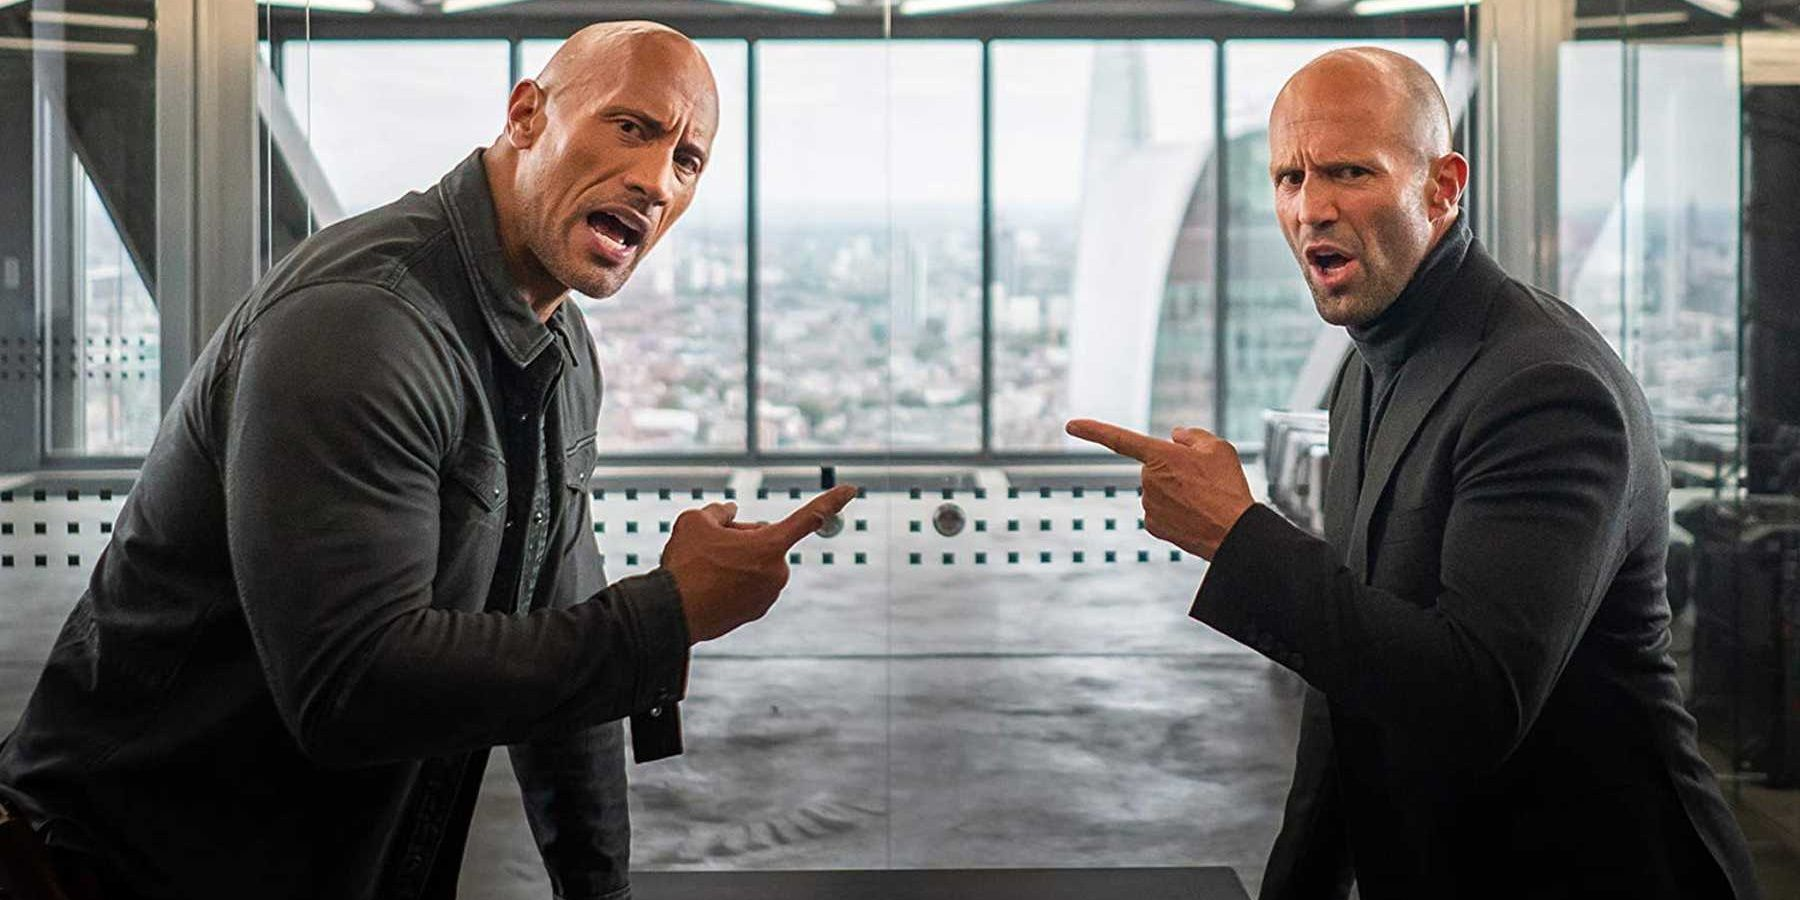 F9 Director Teases Hobbs And Shaw Return In Main Fast And Furious Saga